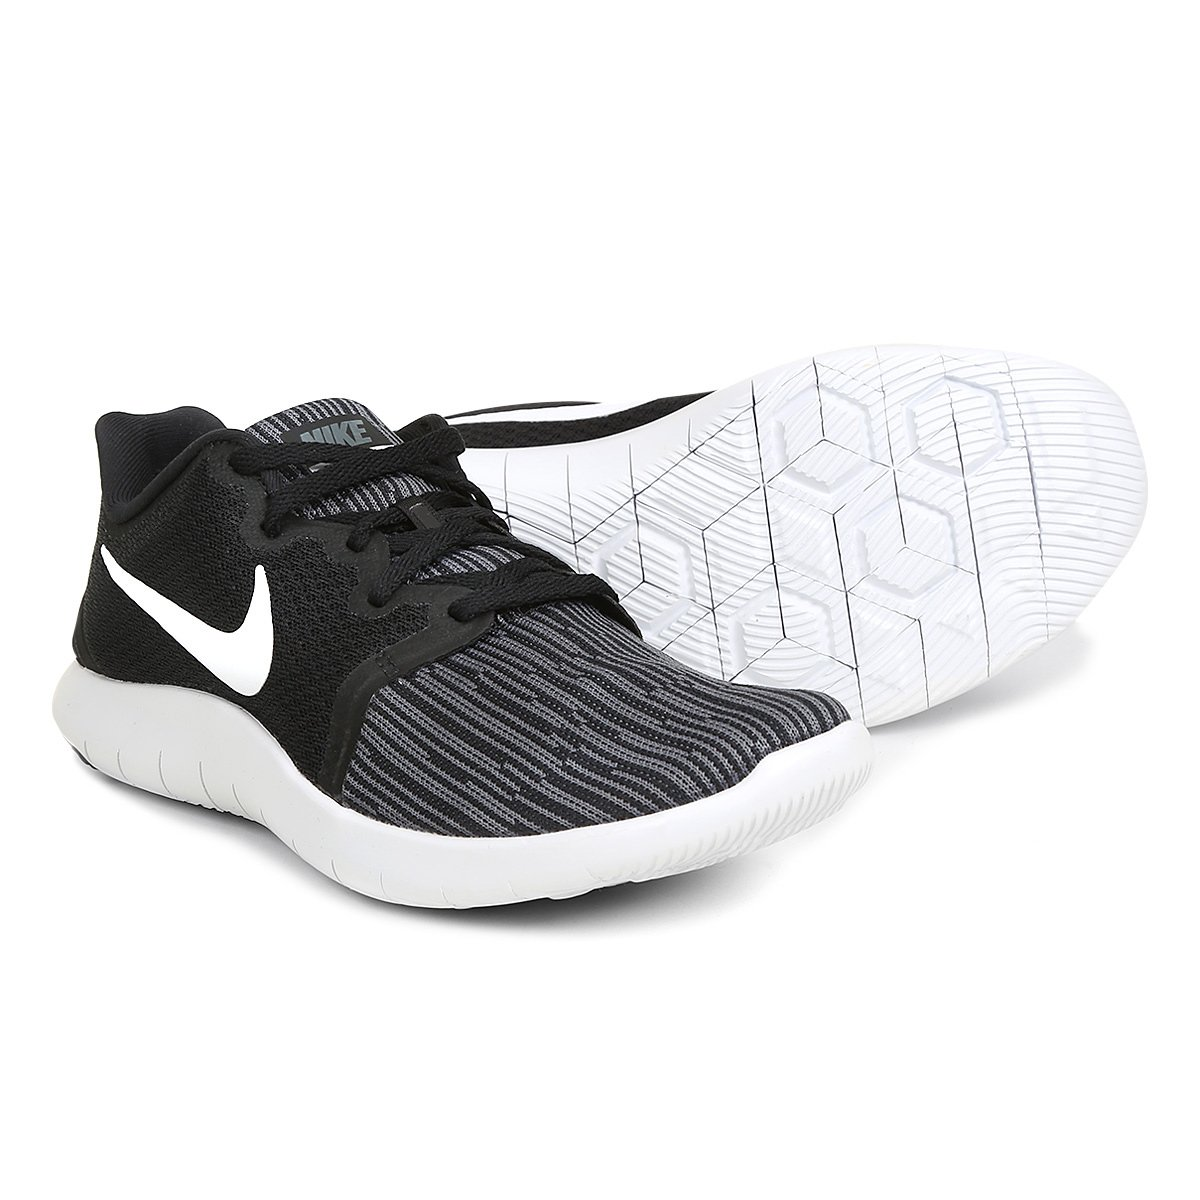 19fdded8288 https   www.netshoes.com.br tenis-ni...o-D12-9613-028